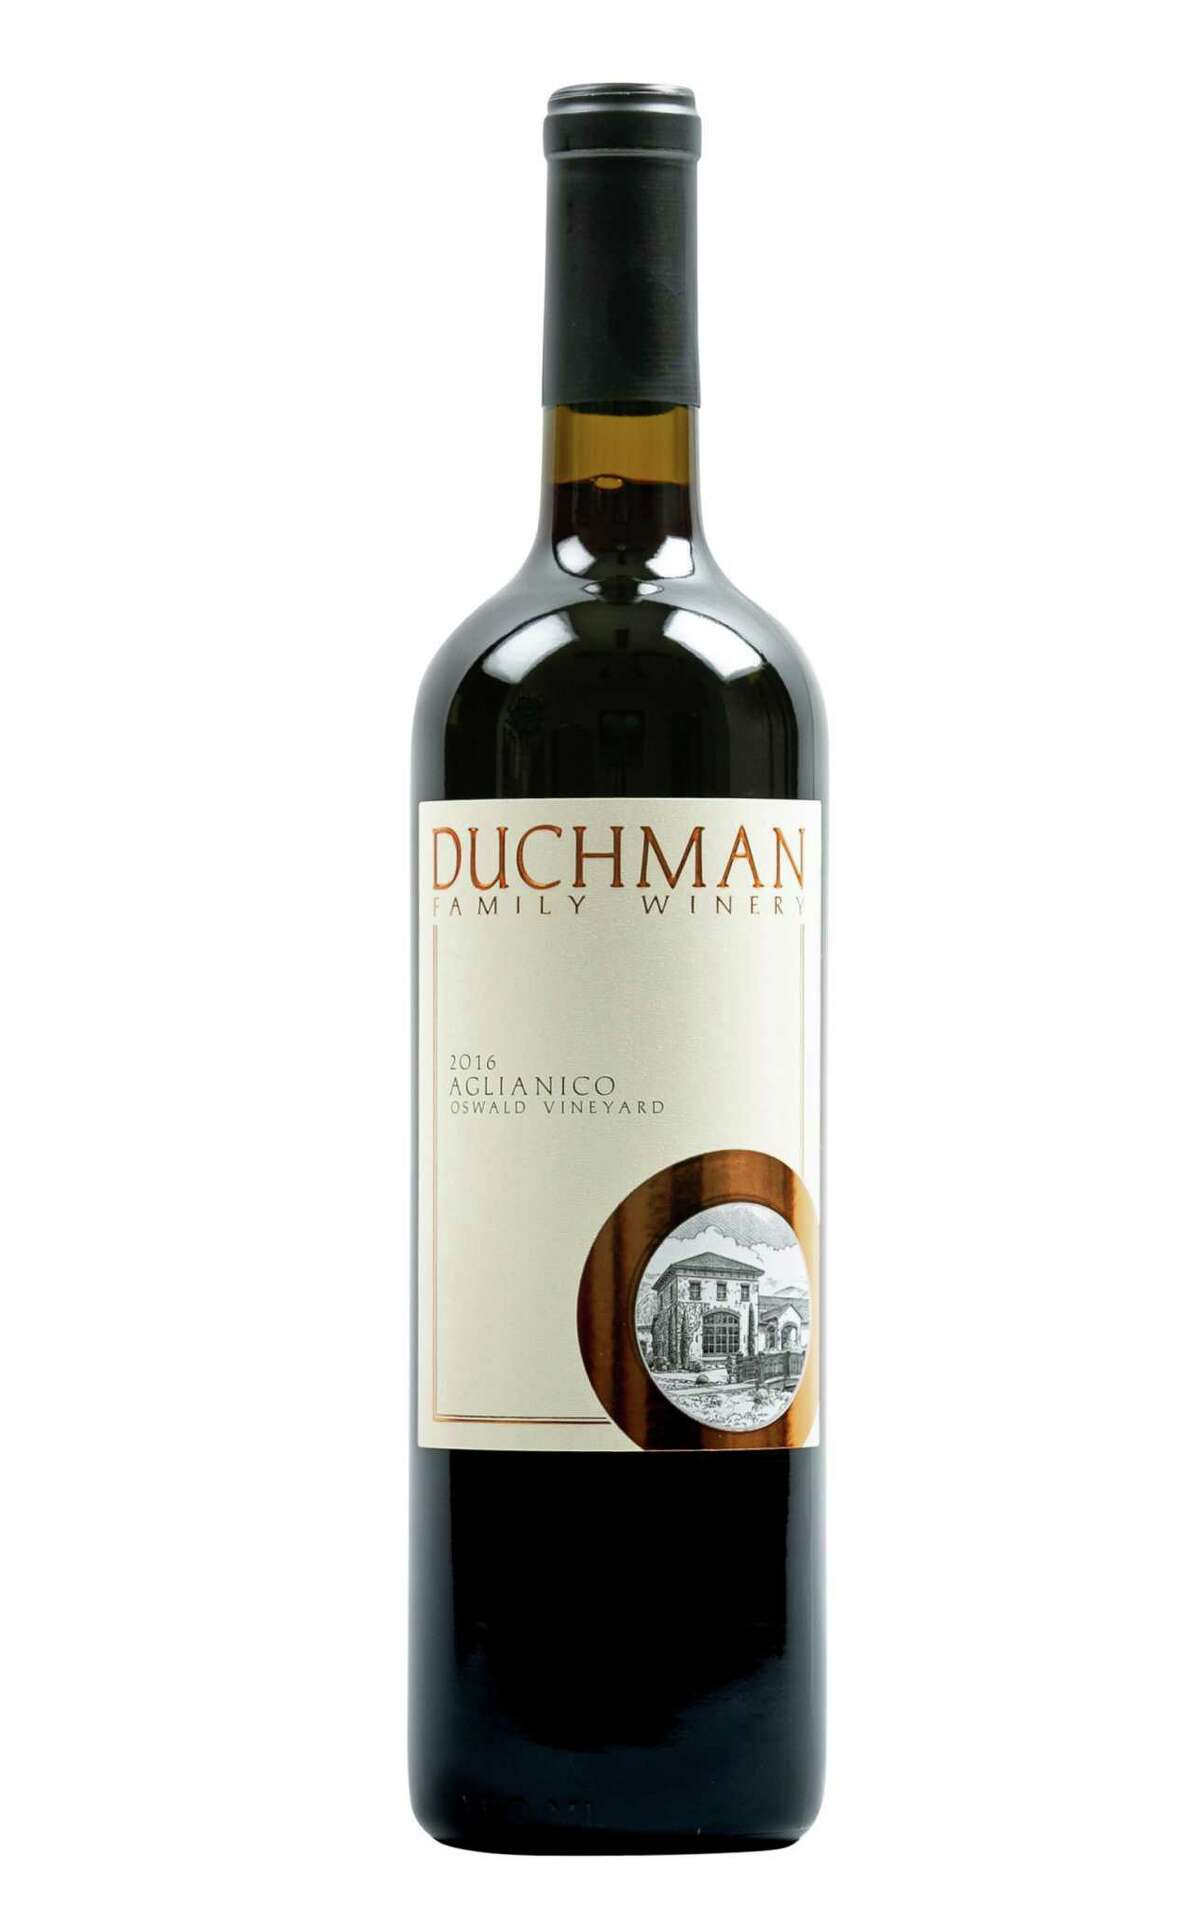 2016 Duchman Family Winery Texas Aglianico, Oswald Vineyard